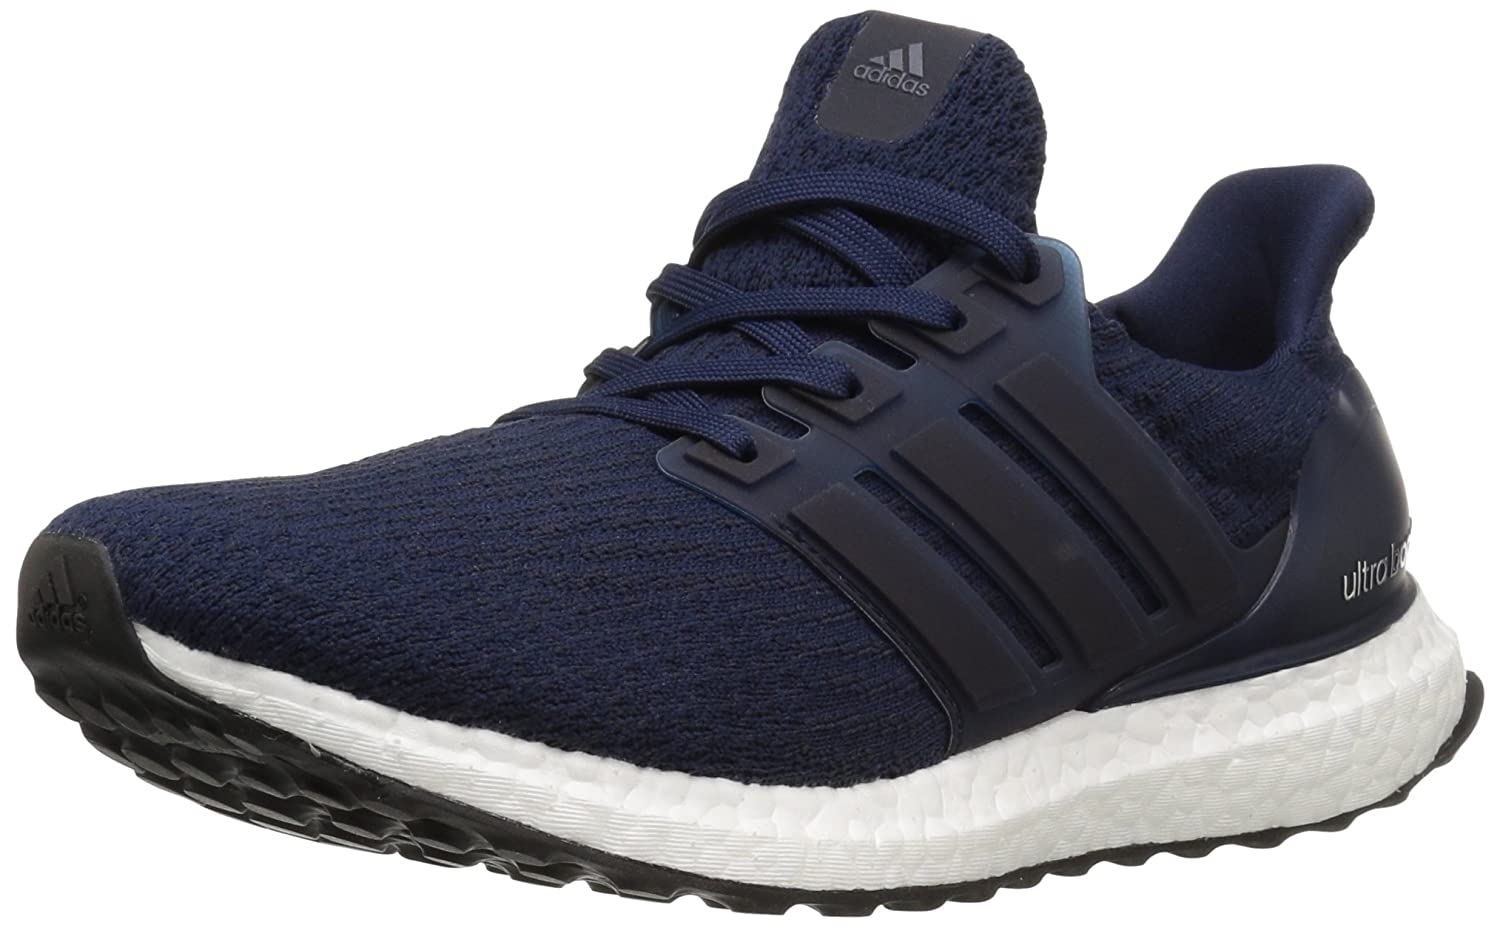 adidas Performance Men's Ultra Boost M Running Shoe B01H6442TM 8.5 D(M) US|Collegiate Navy/Collegiate Navy/Dark Navy